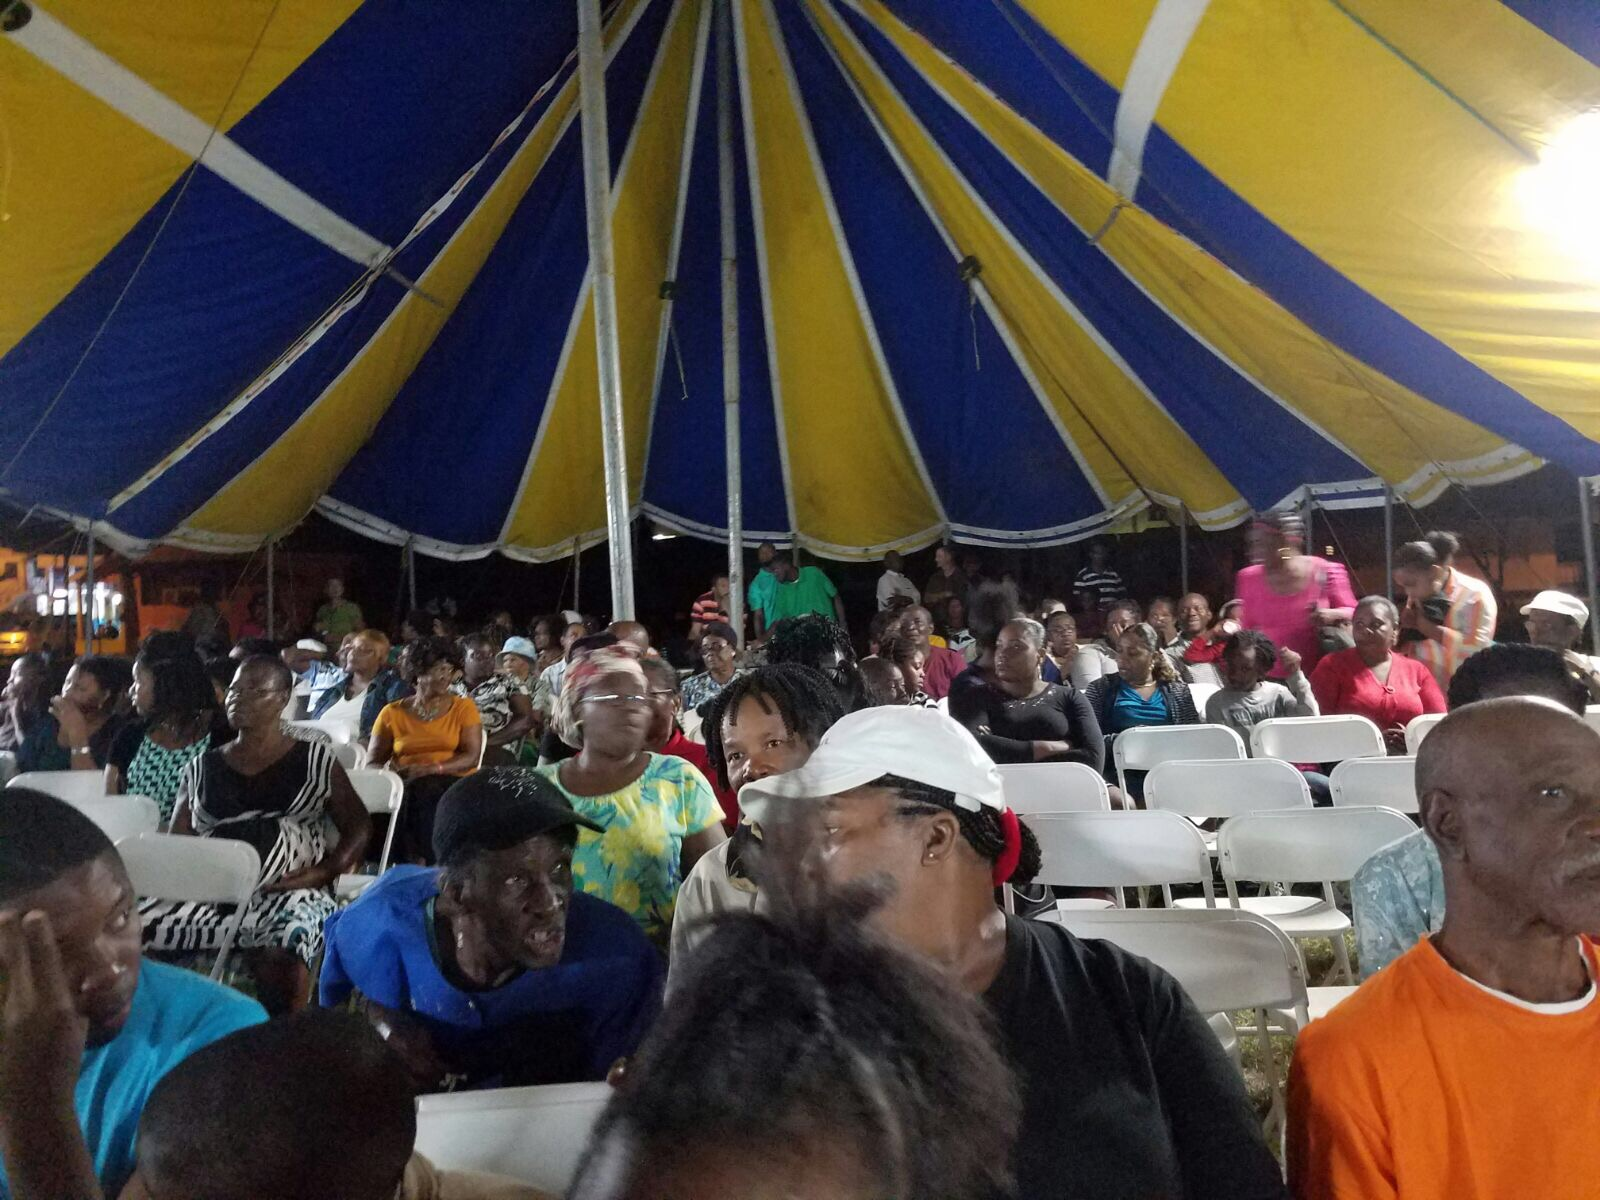 TENT CRUSADE in DOMINICA